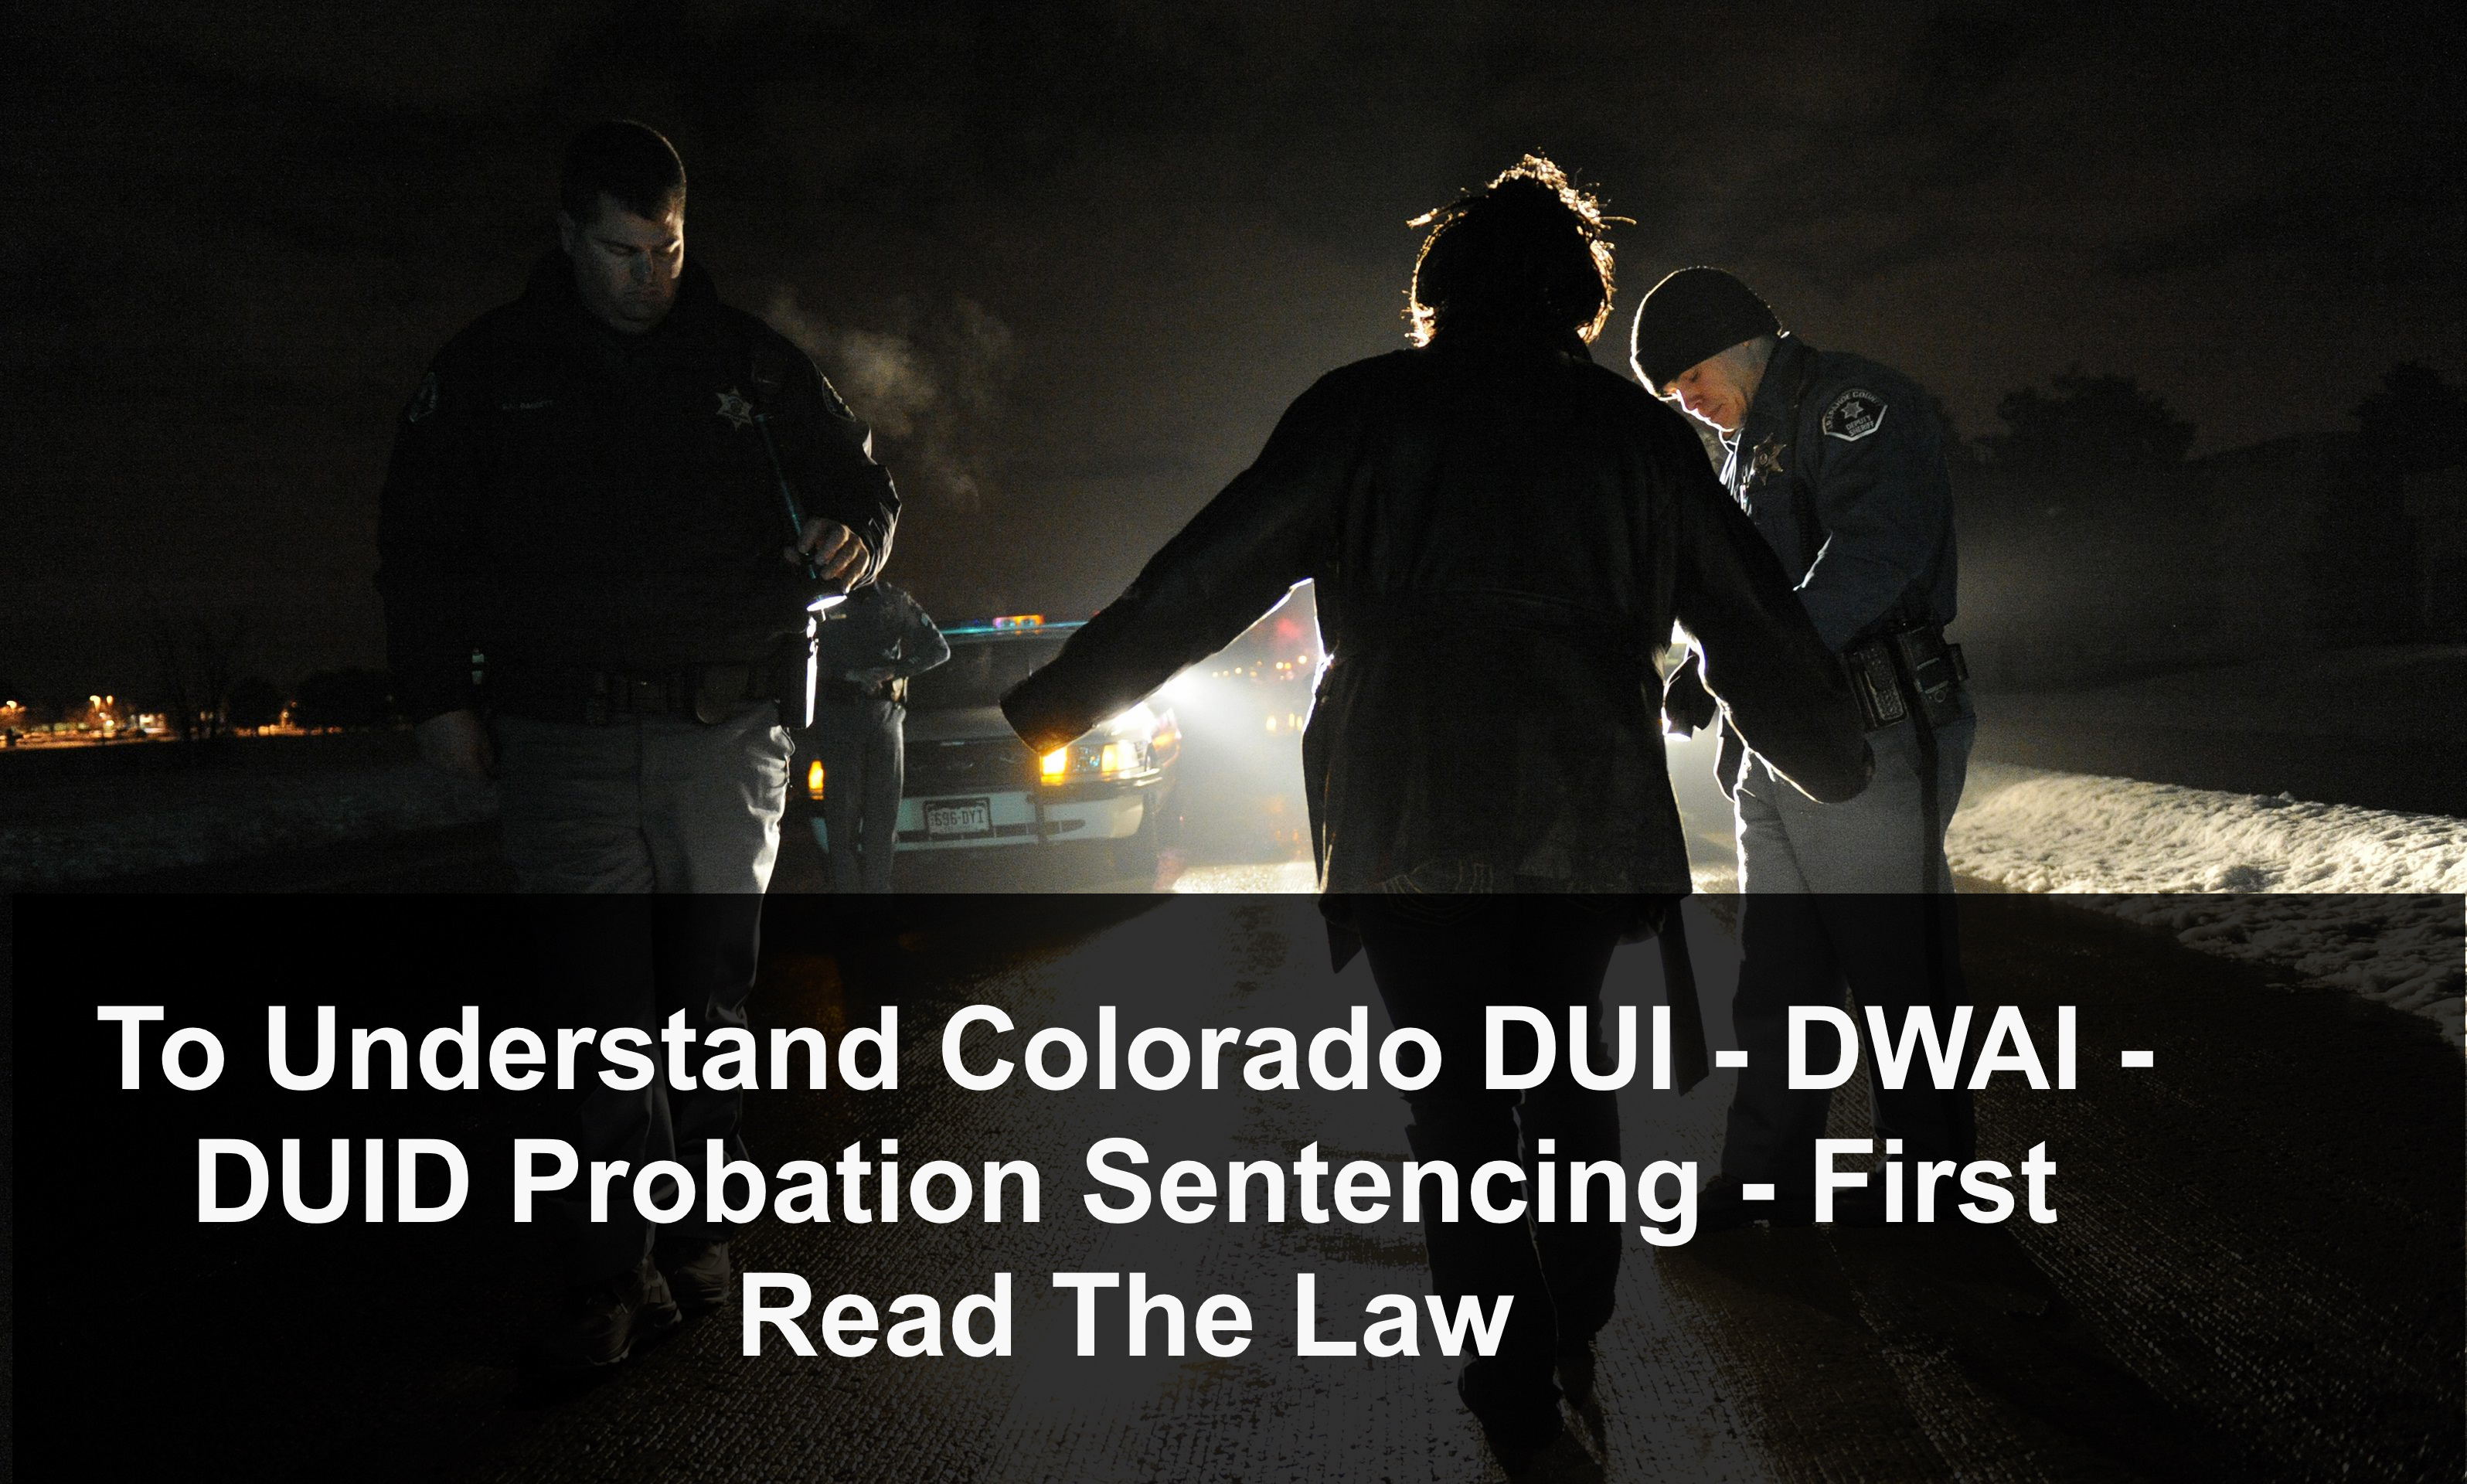 To Understand Colorado DUI - DWAI - DUID Probation Sentencing - First Read The Law